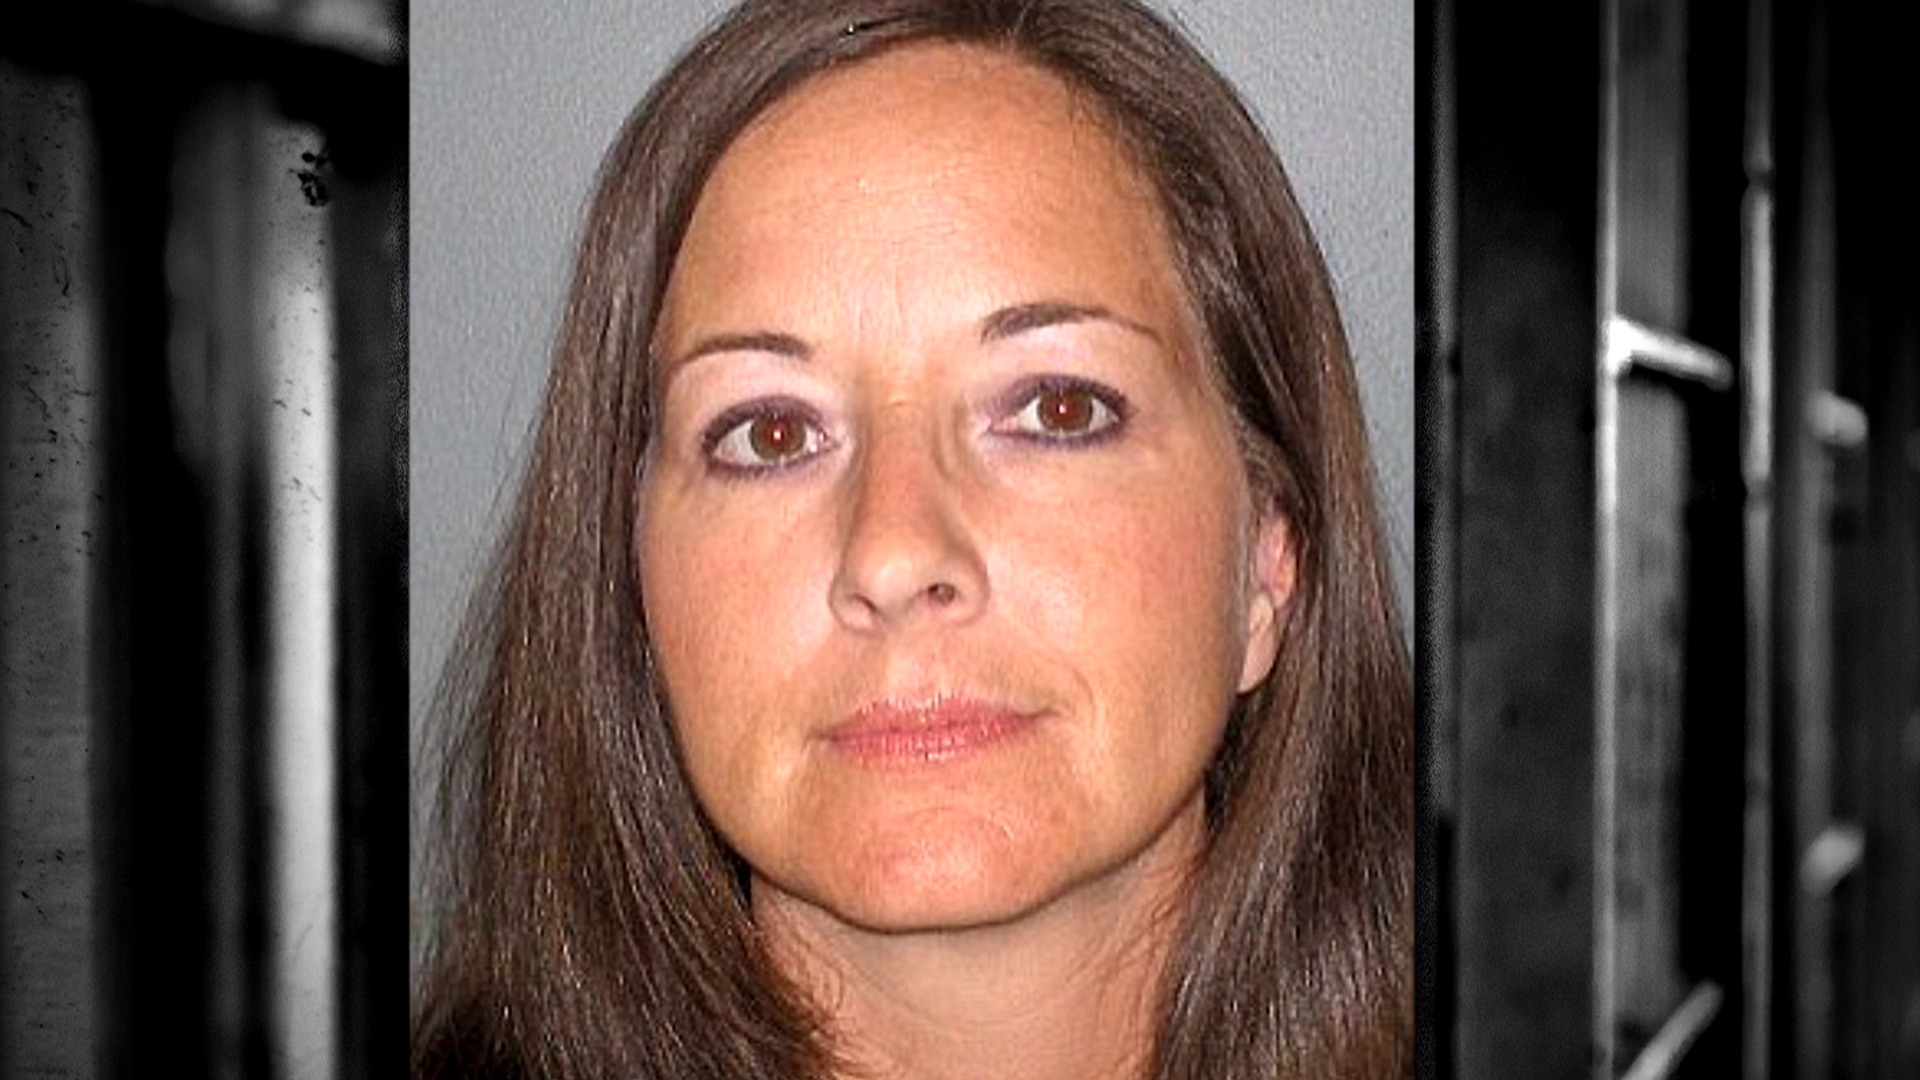 Susan Smith Mother Who Killed Kids Something Went Very Wrong That